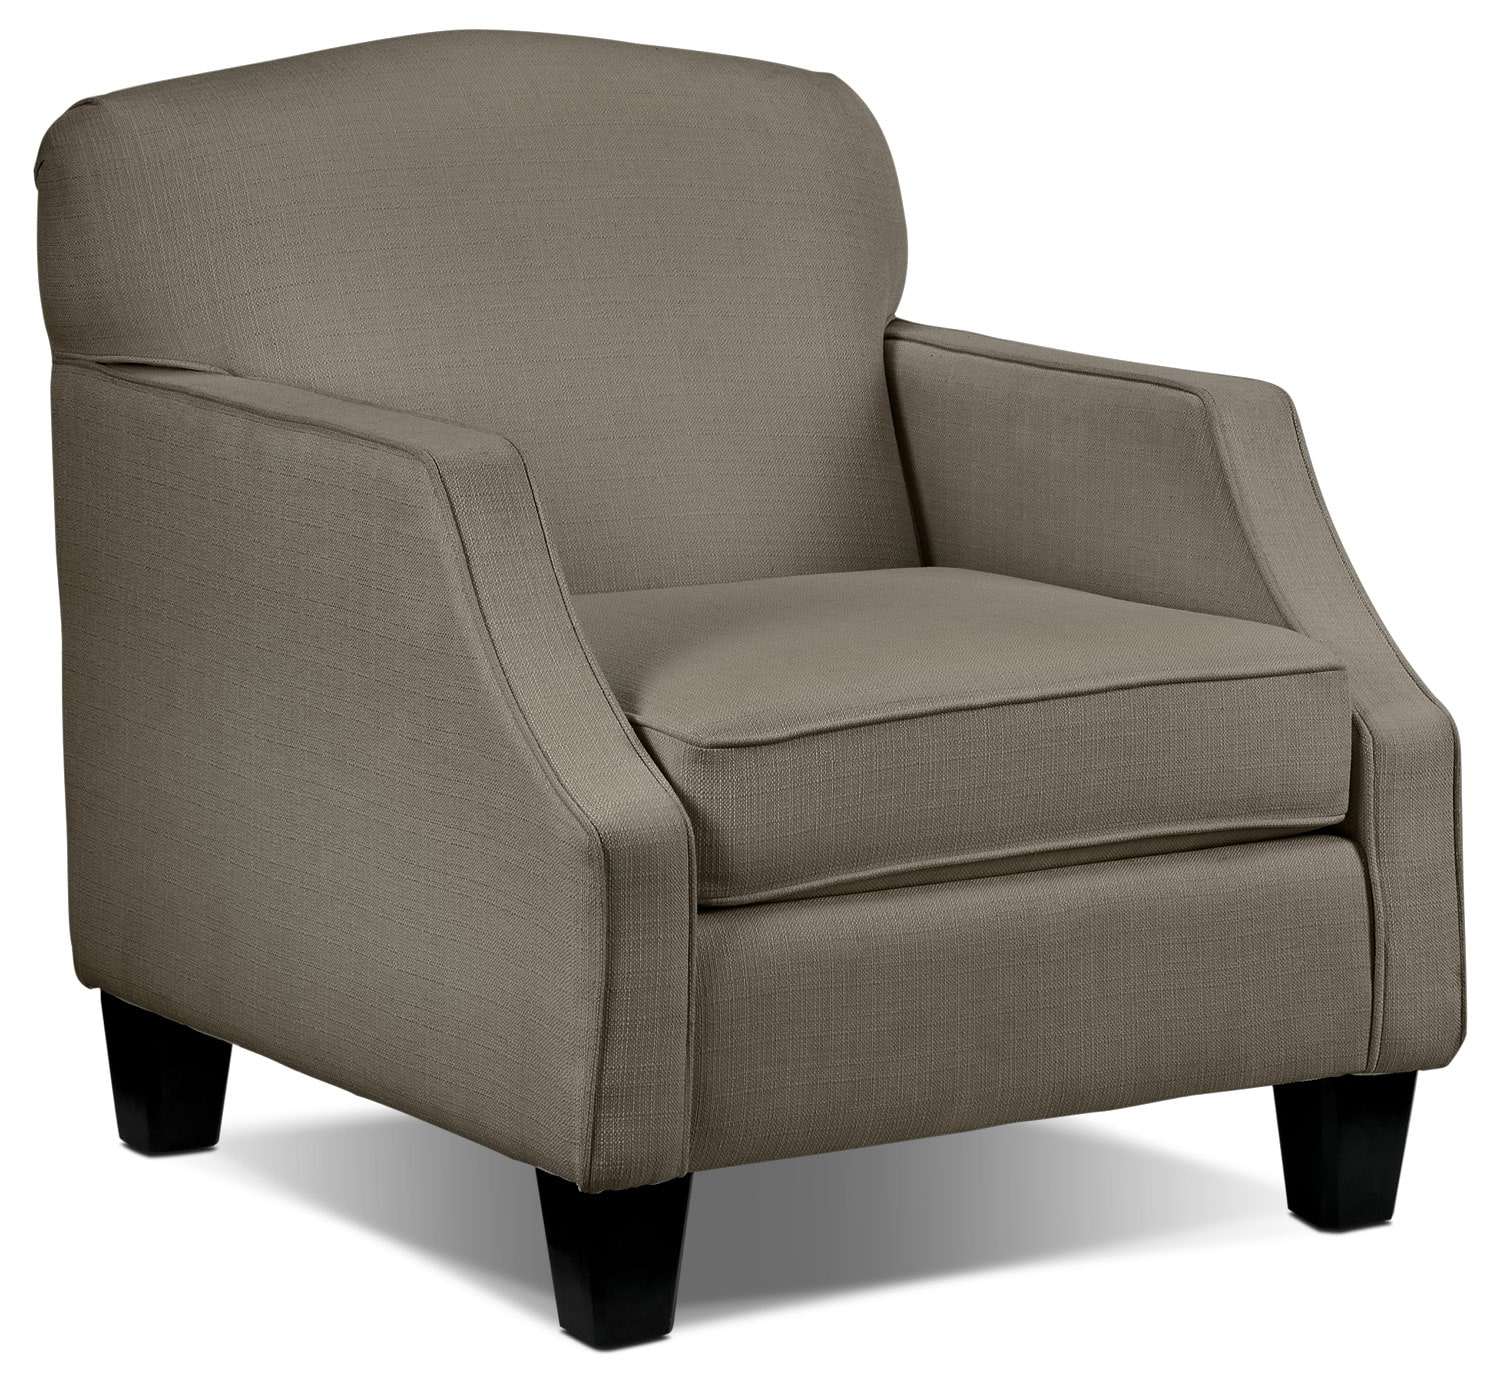 Living Room Furniture - Klein Chair - Grey